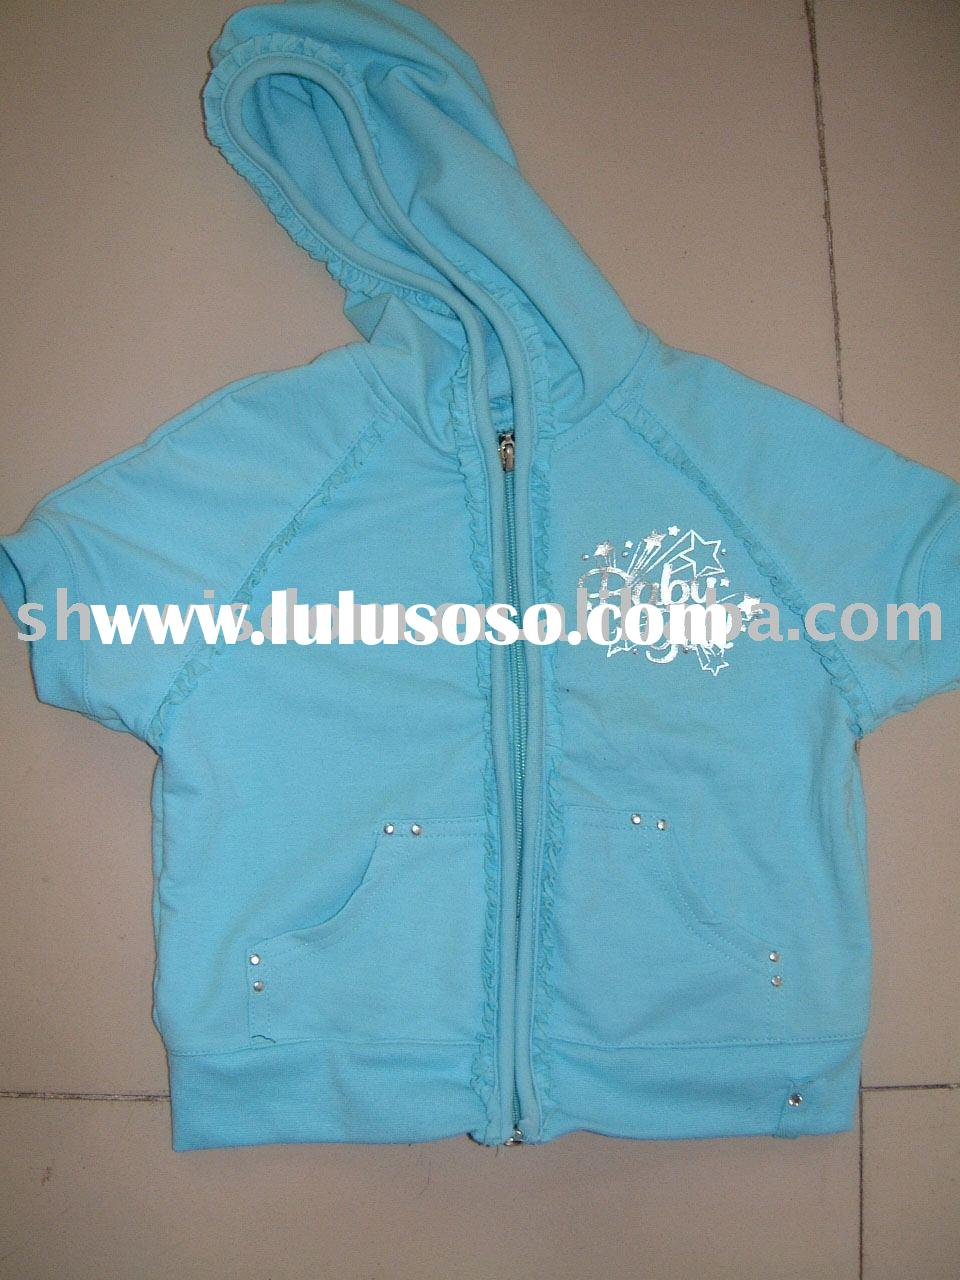 LADIES' JOGGING SUITS